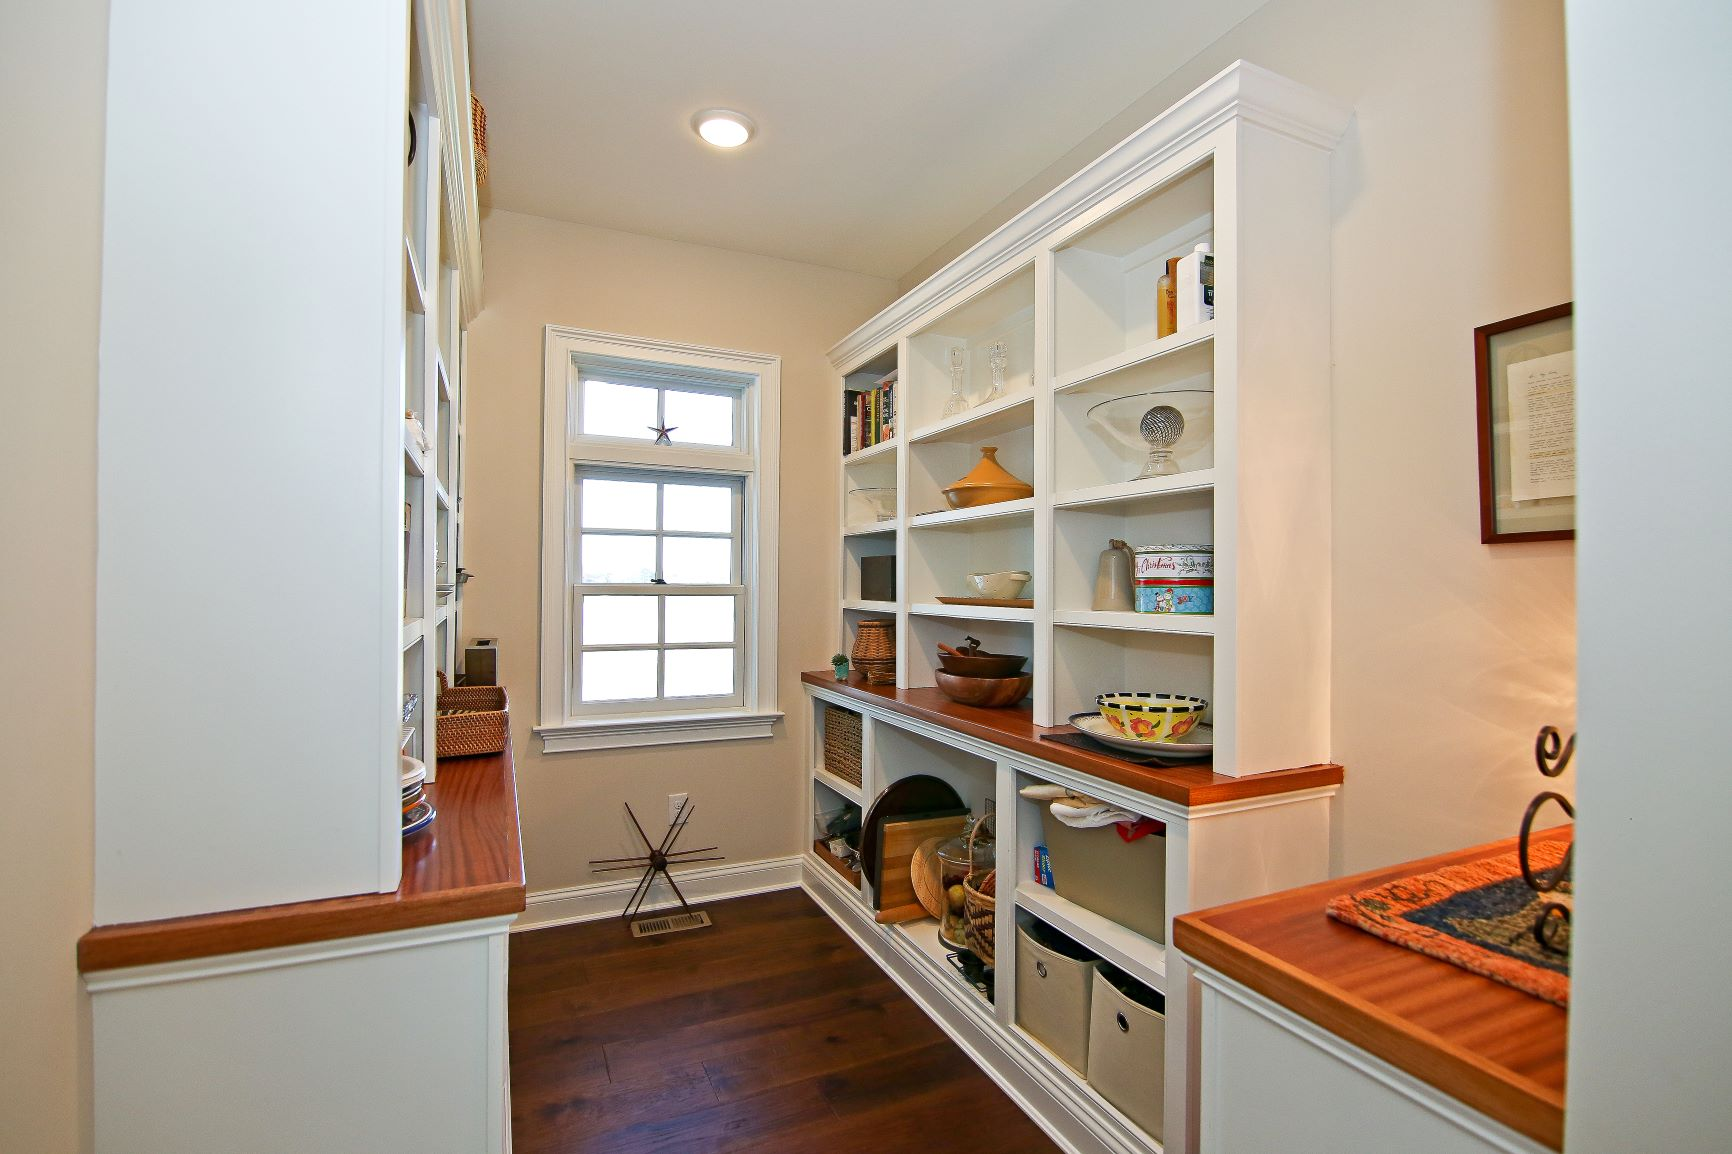 Showfield-Jaques-Pantry.jpg